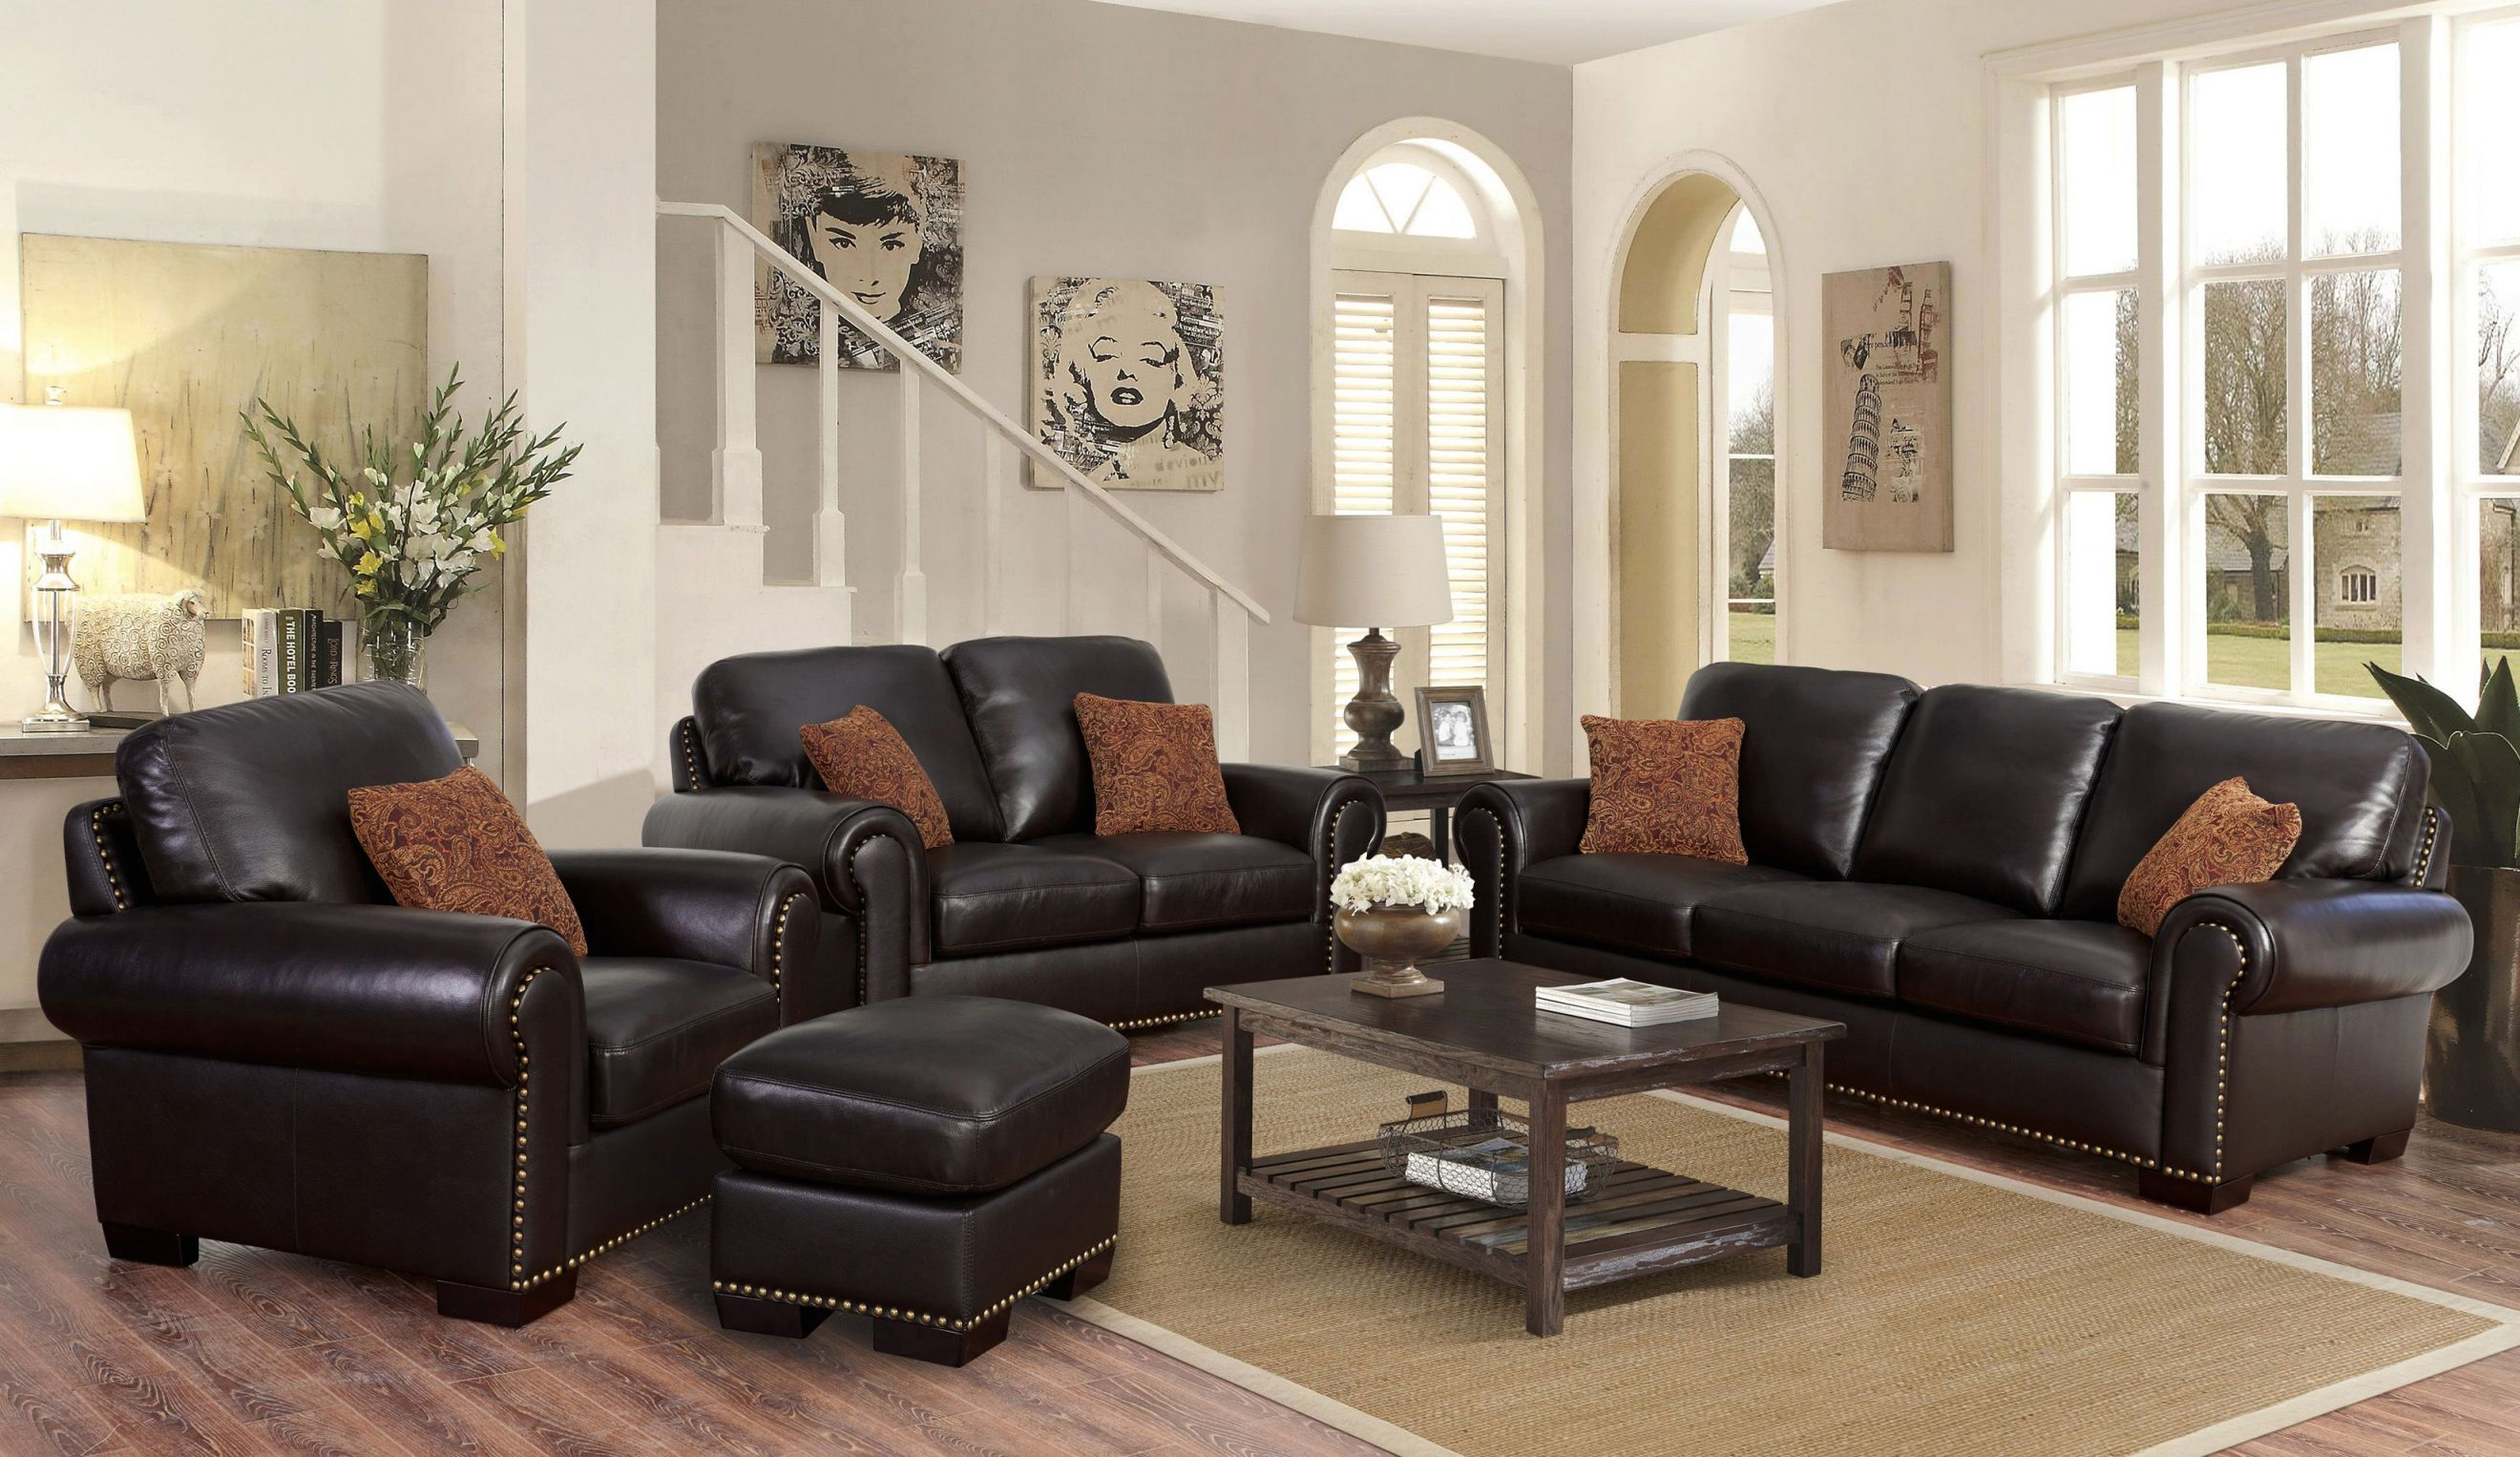 Preston 4-Piece Top Grain Leather Living Room Set in Awesome Leather Living Room Sets